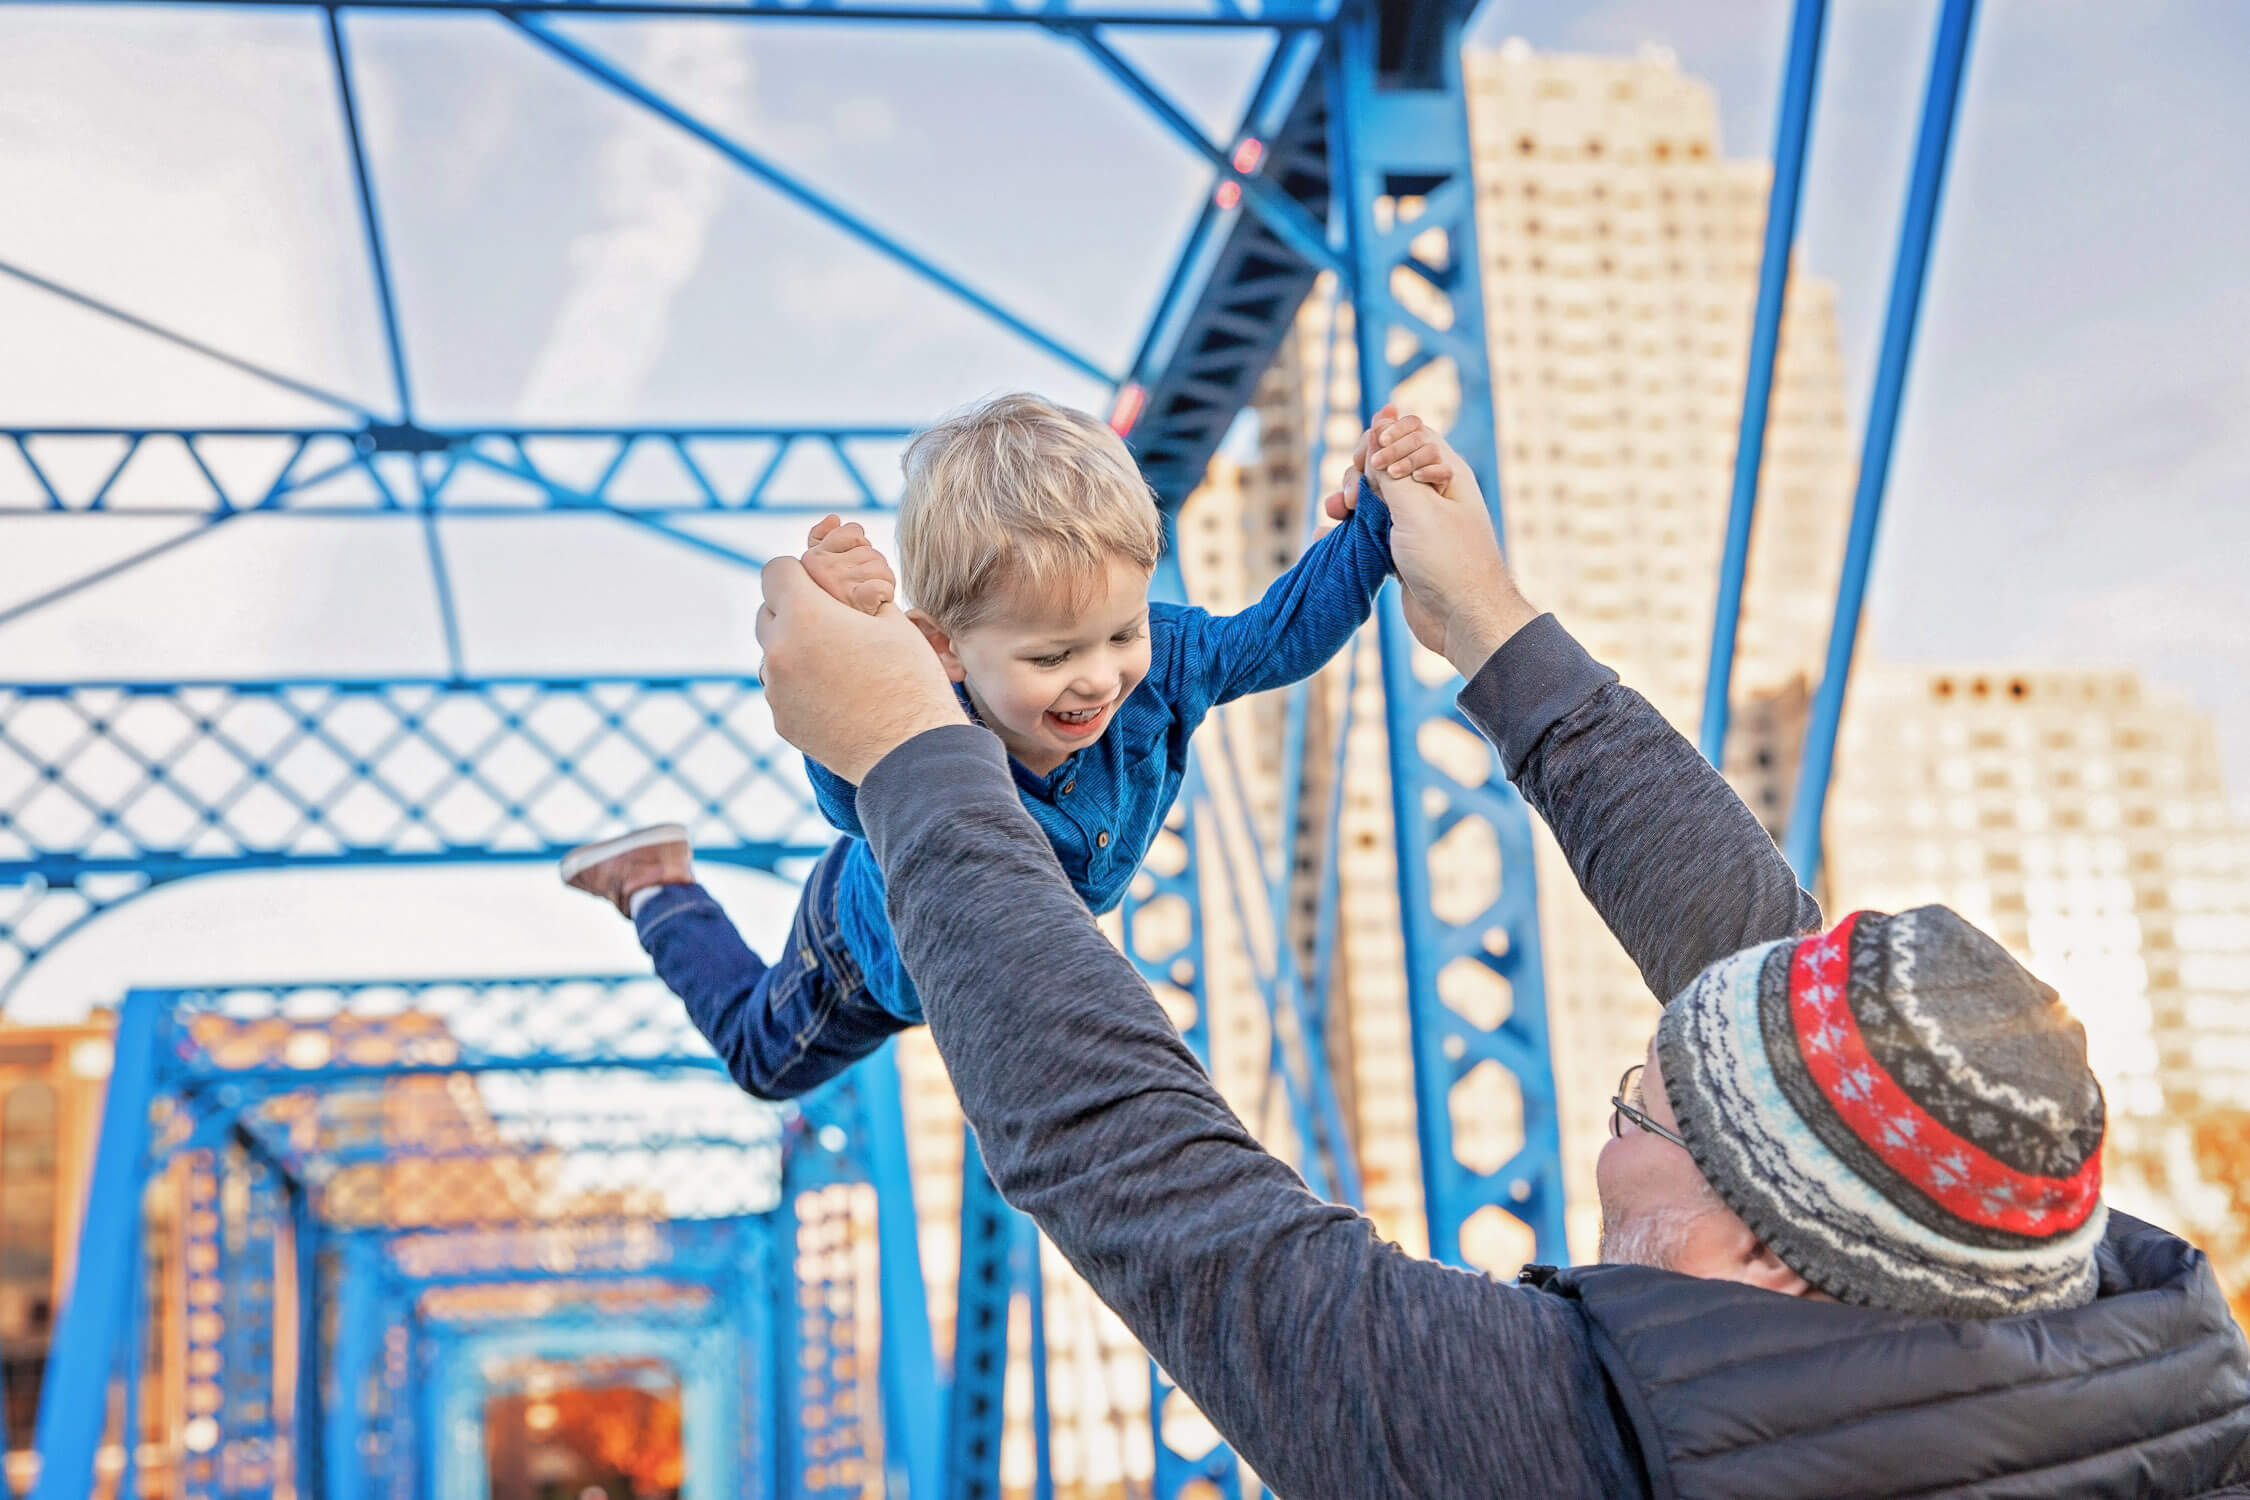 dad lifting toddler son in air on the Blue Bridge